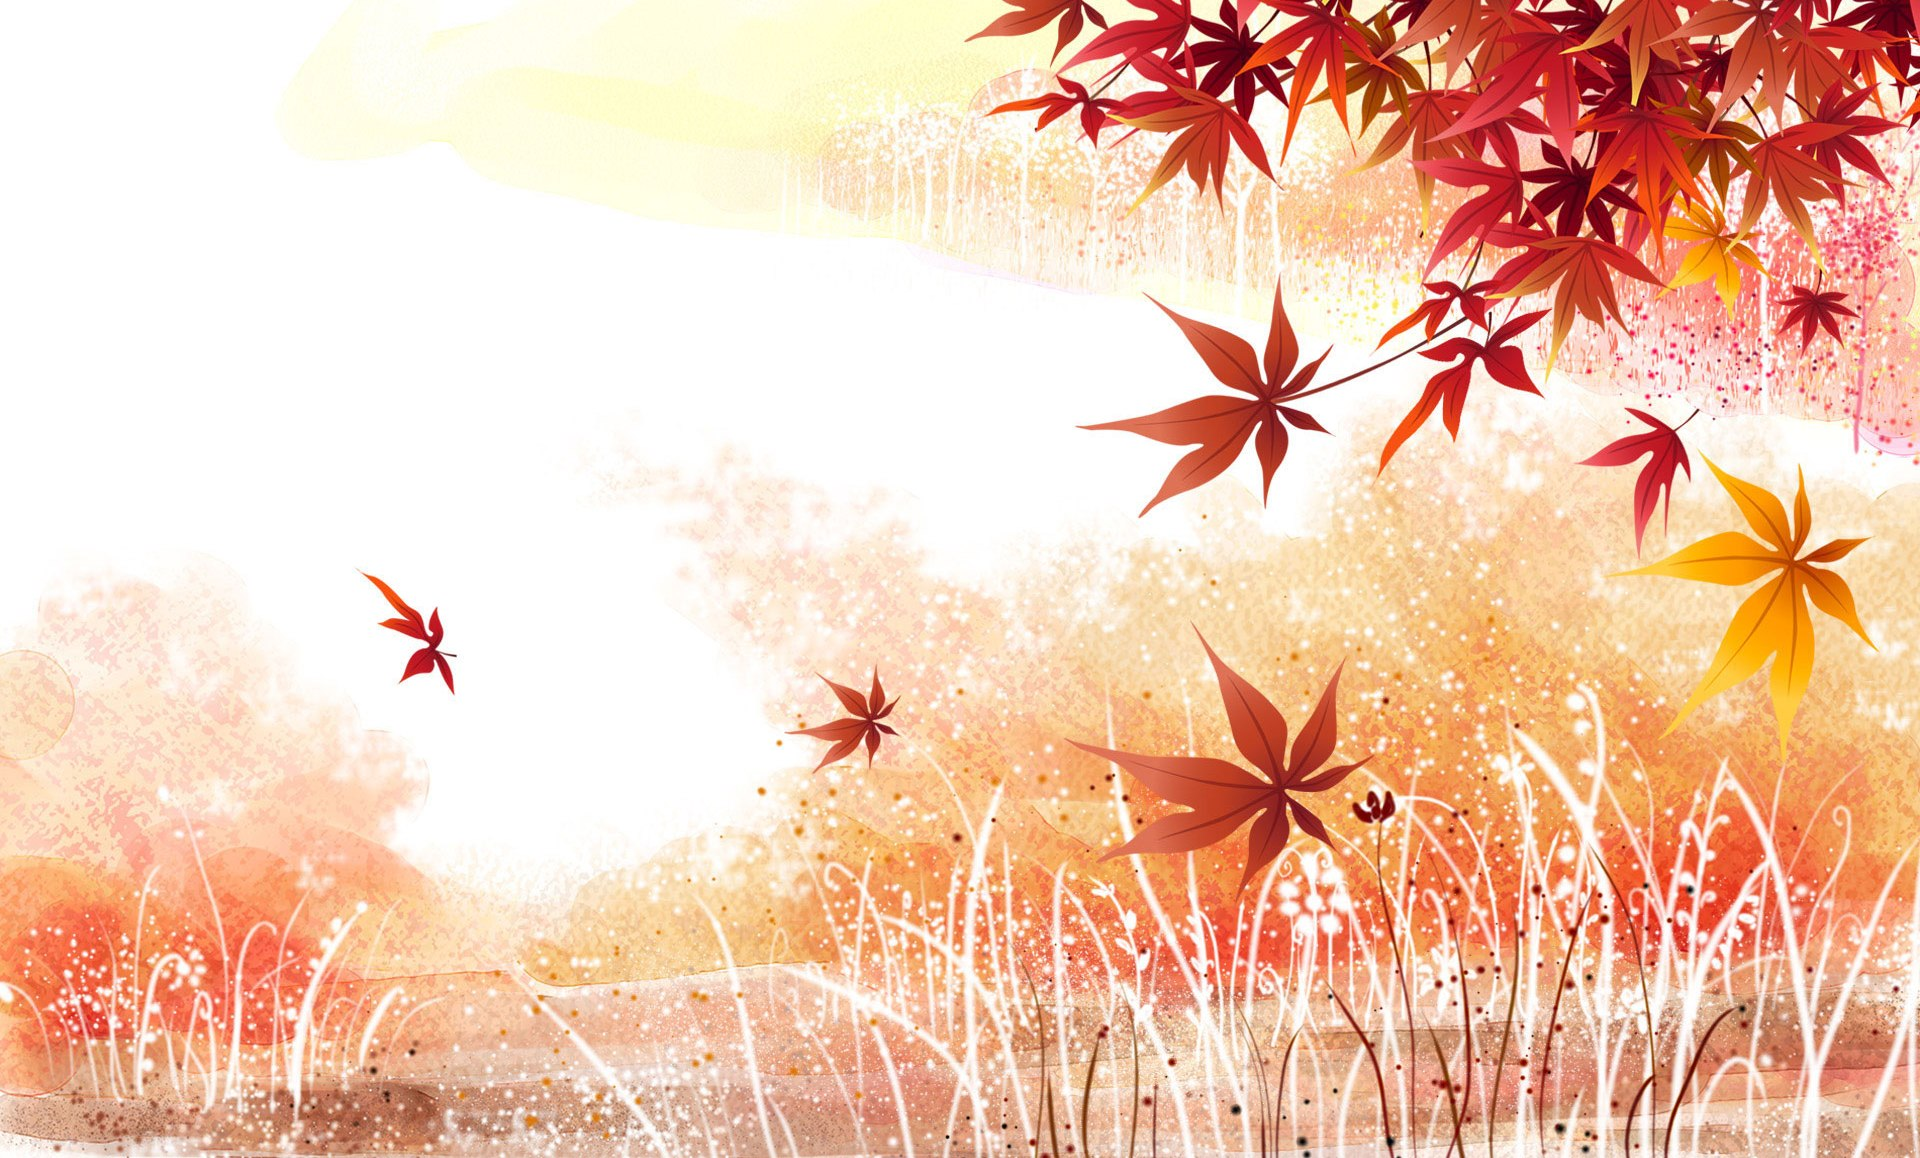 Autumn Leaves Wallpaper 1920 x 1200 1920x1158